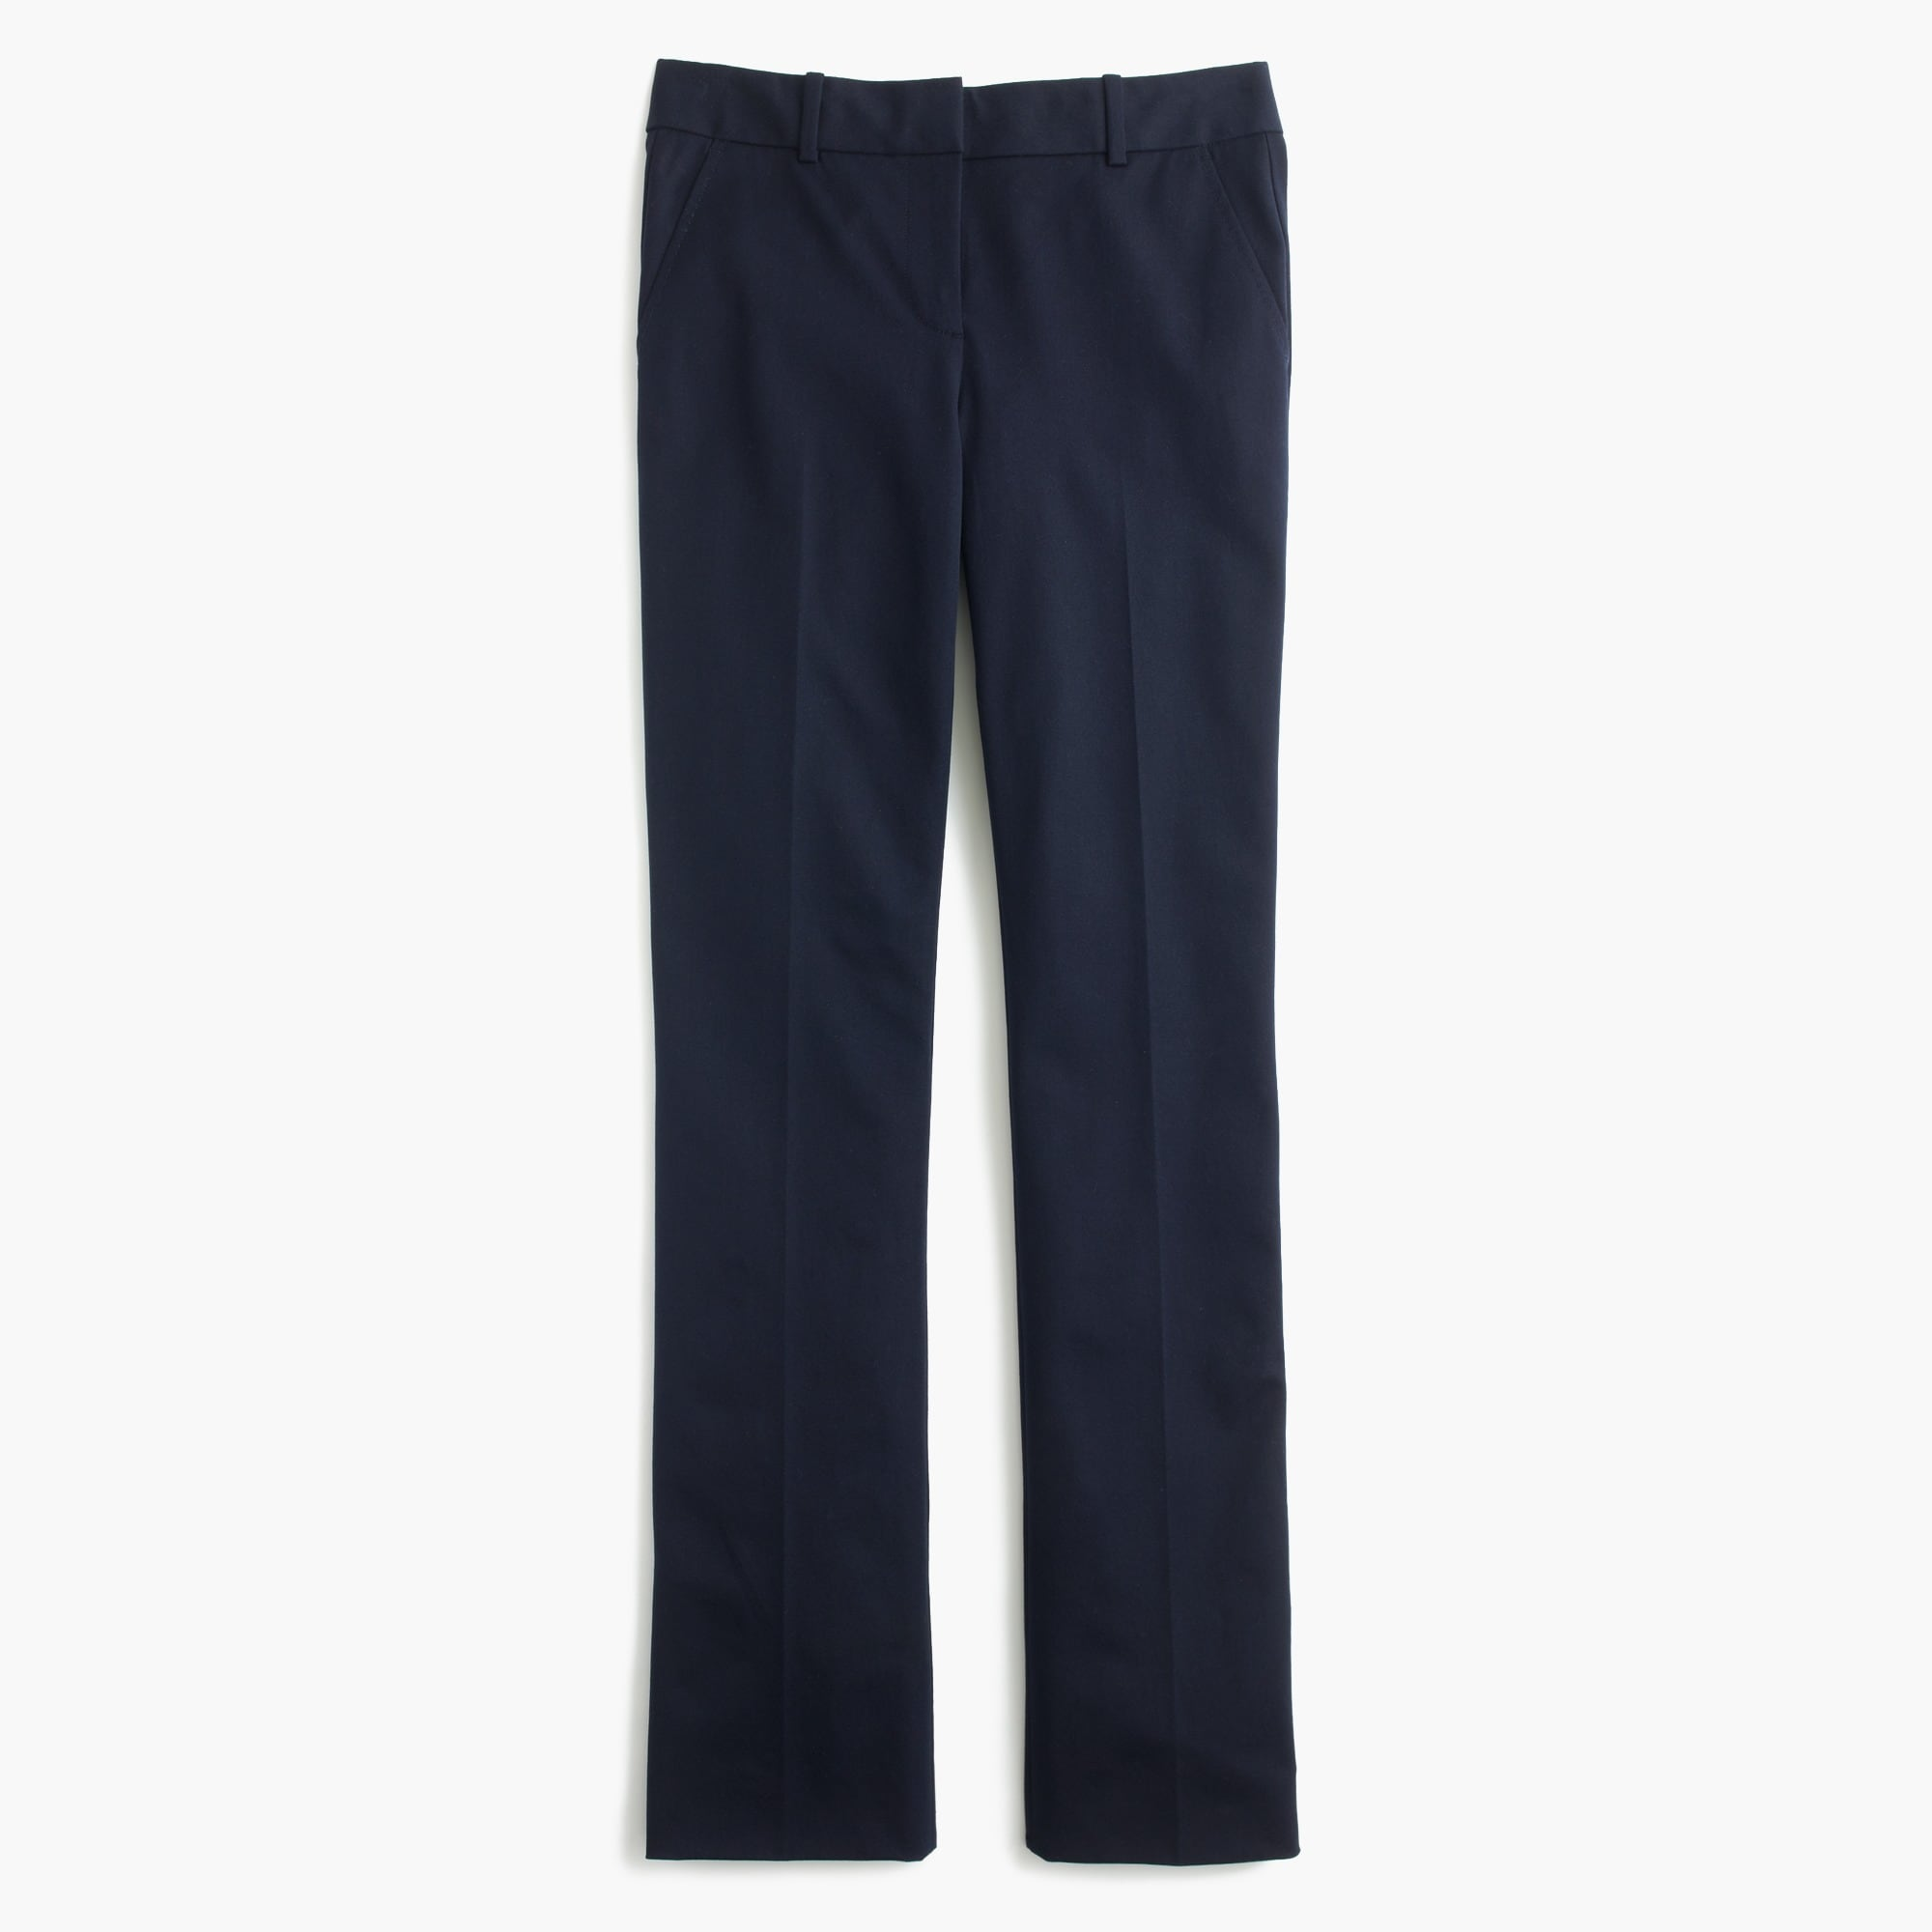 Campbell trouser in two-way stretch cotton